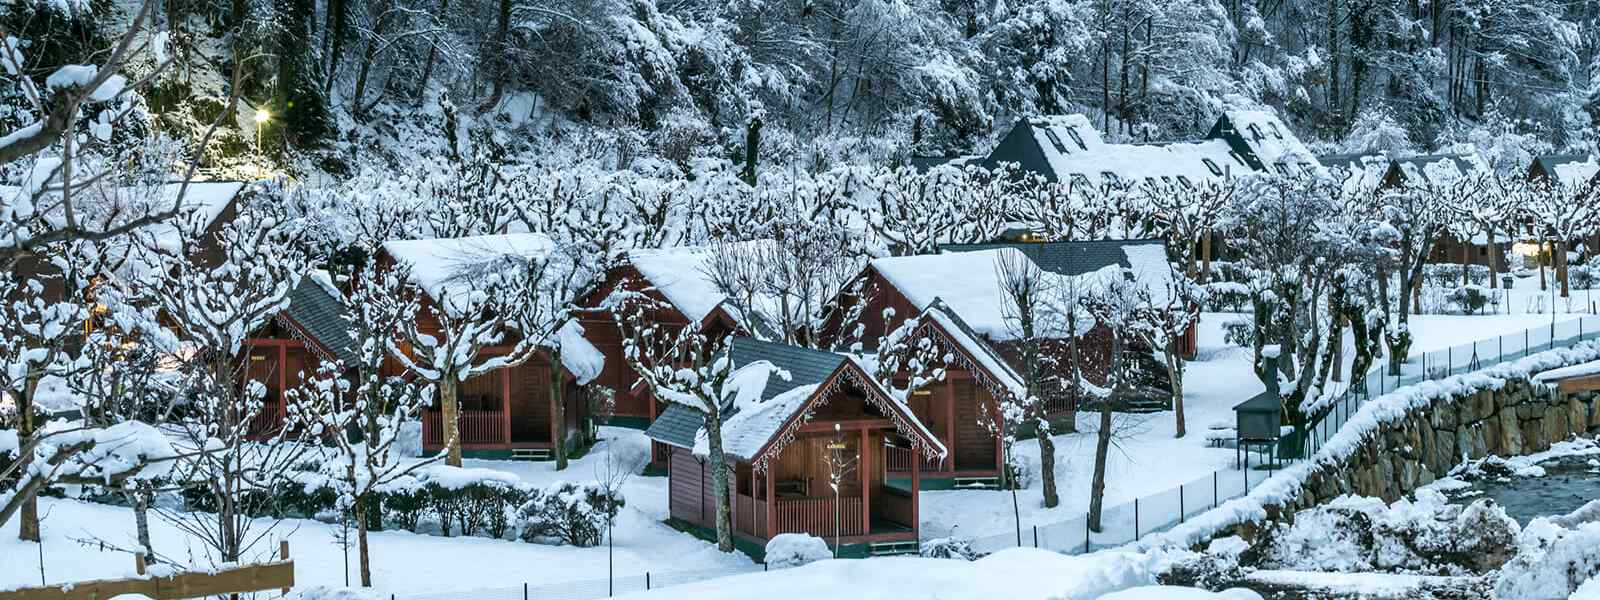 bungalows & snow campings de lleida